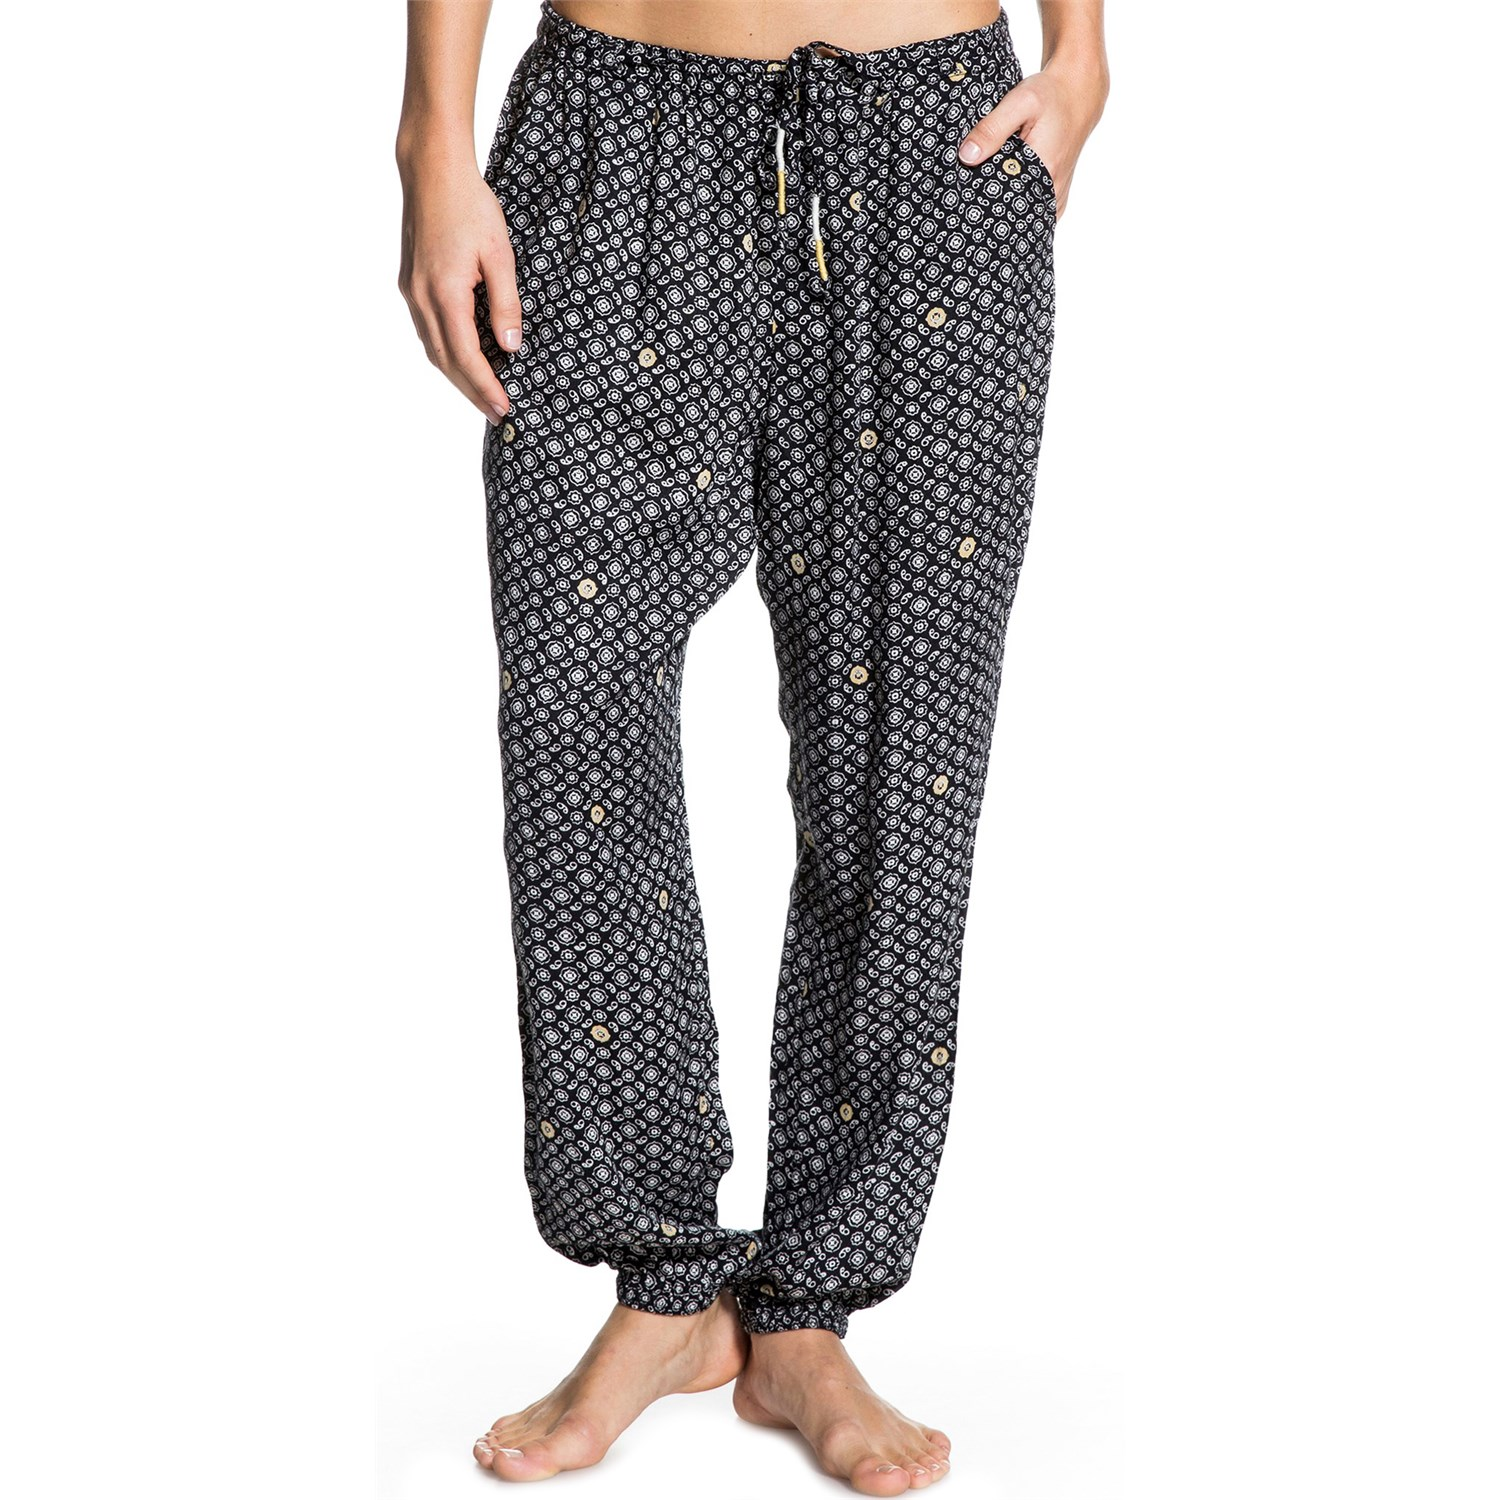 harem pants for womens photo - 1